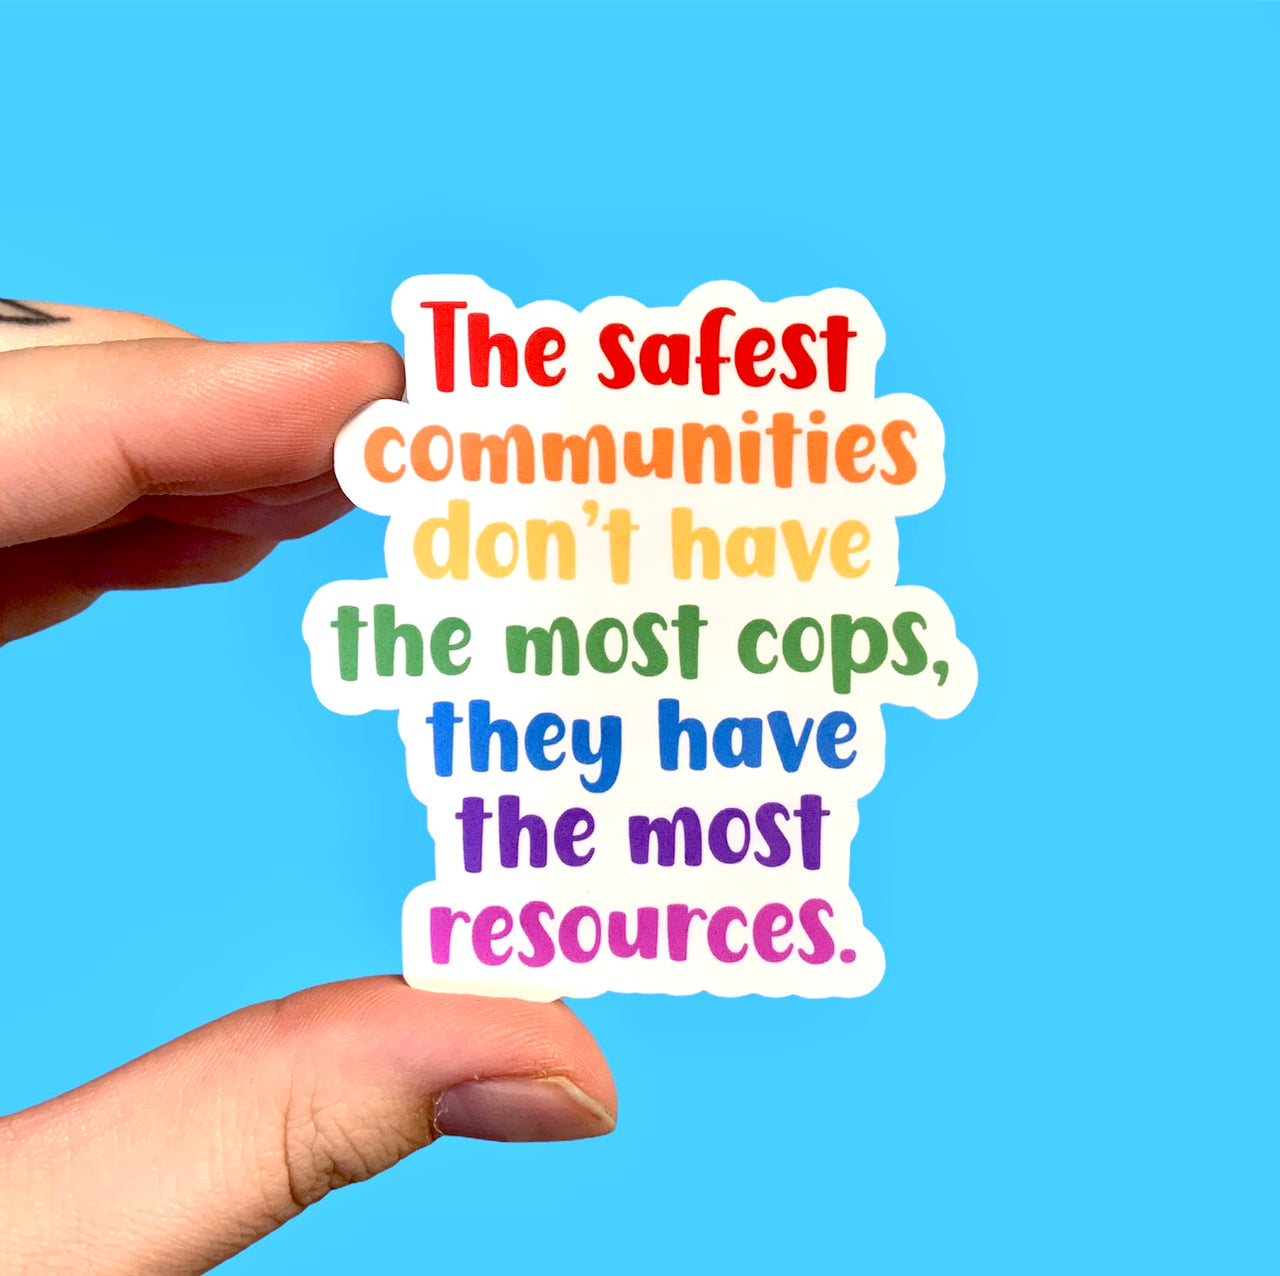 The safest communities don't have the most cops they have the most resources (pack of 3 or 5 stickers)